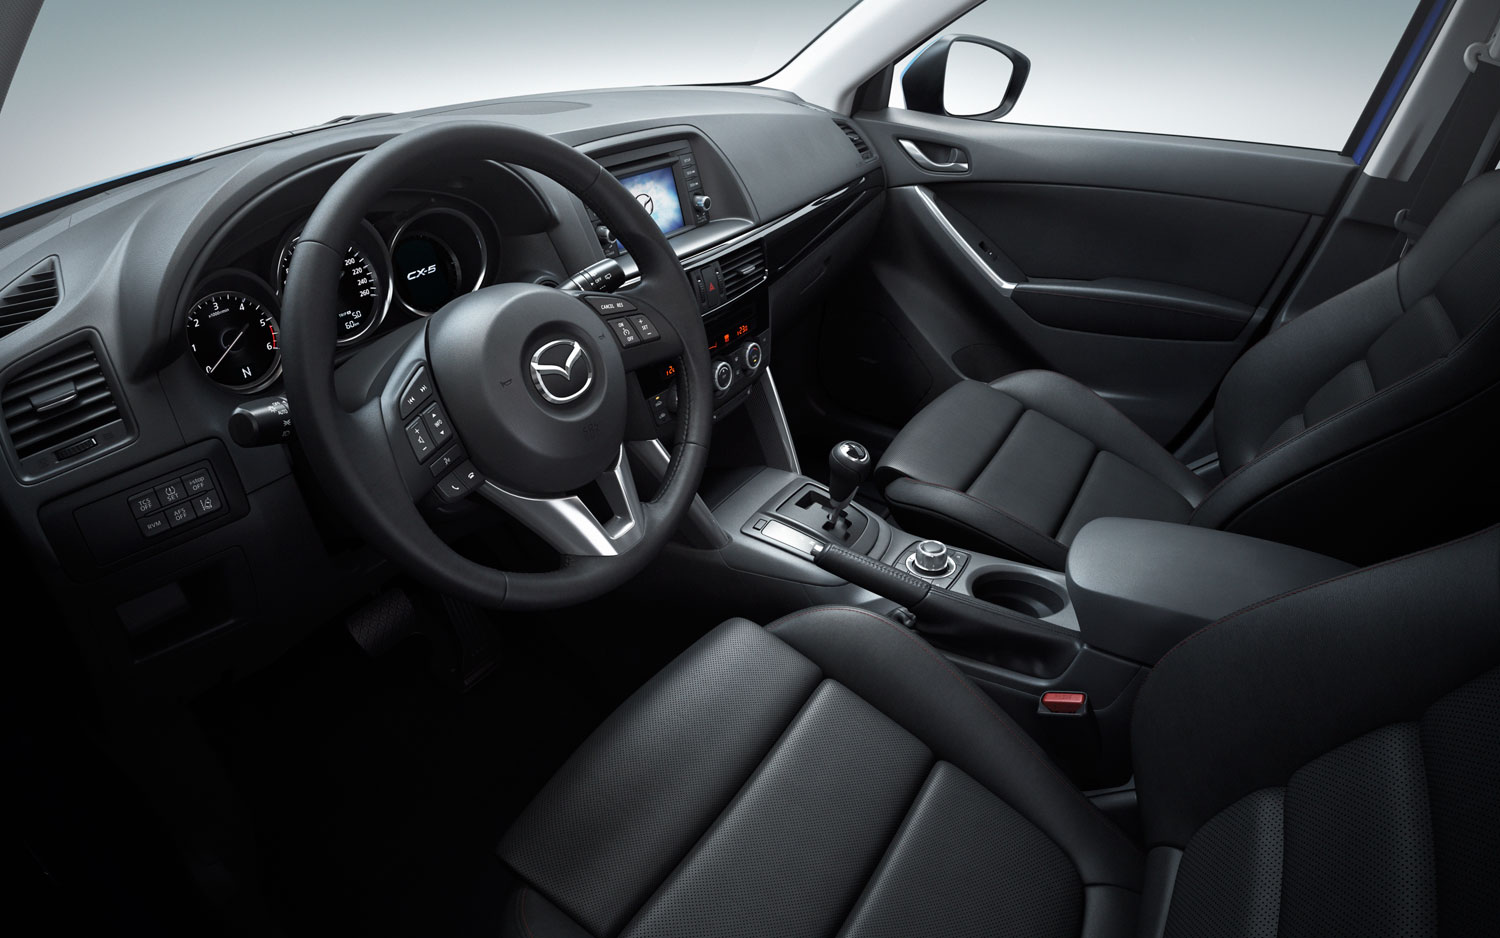 MAZDA CX-5 AT interior